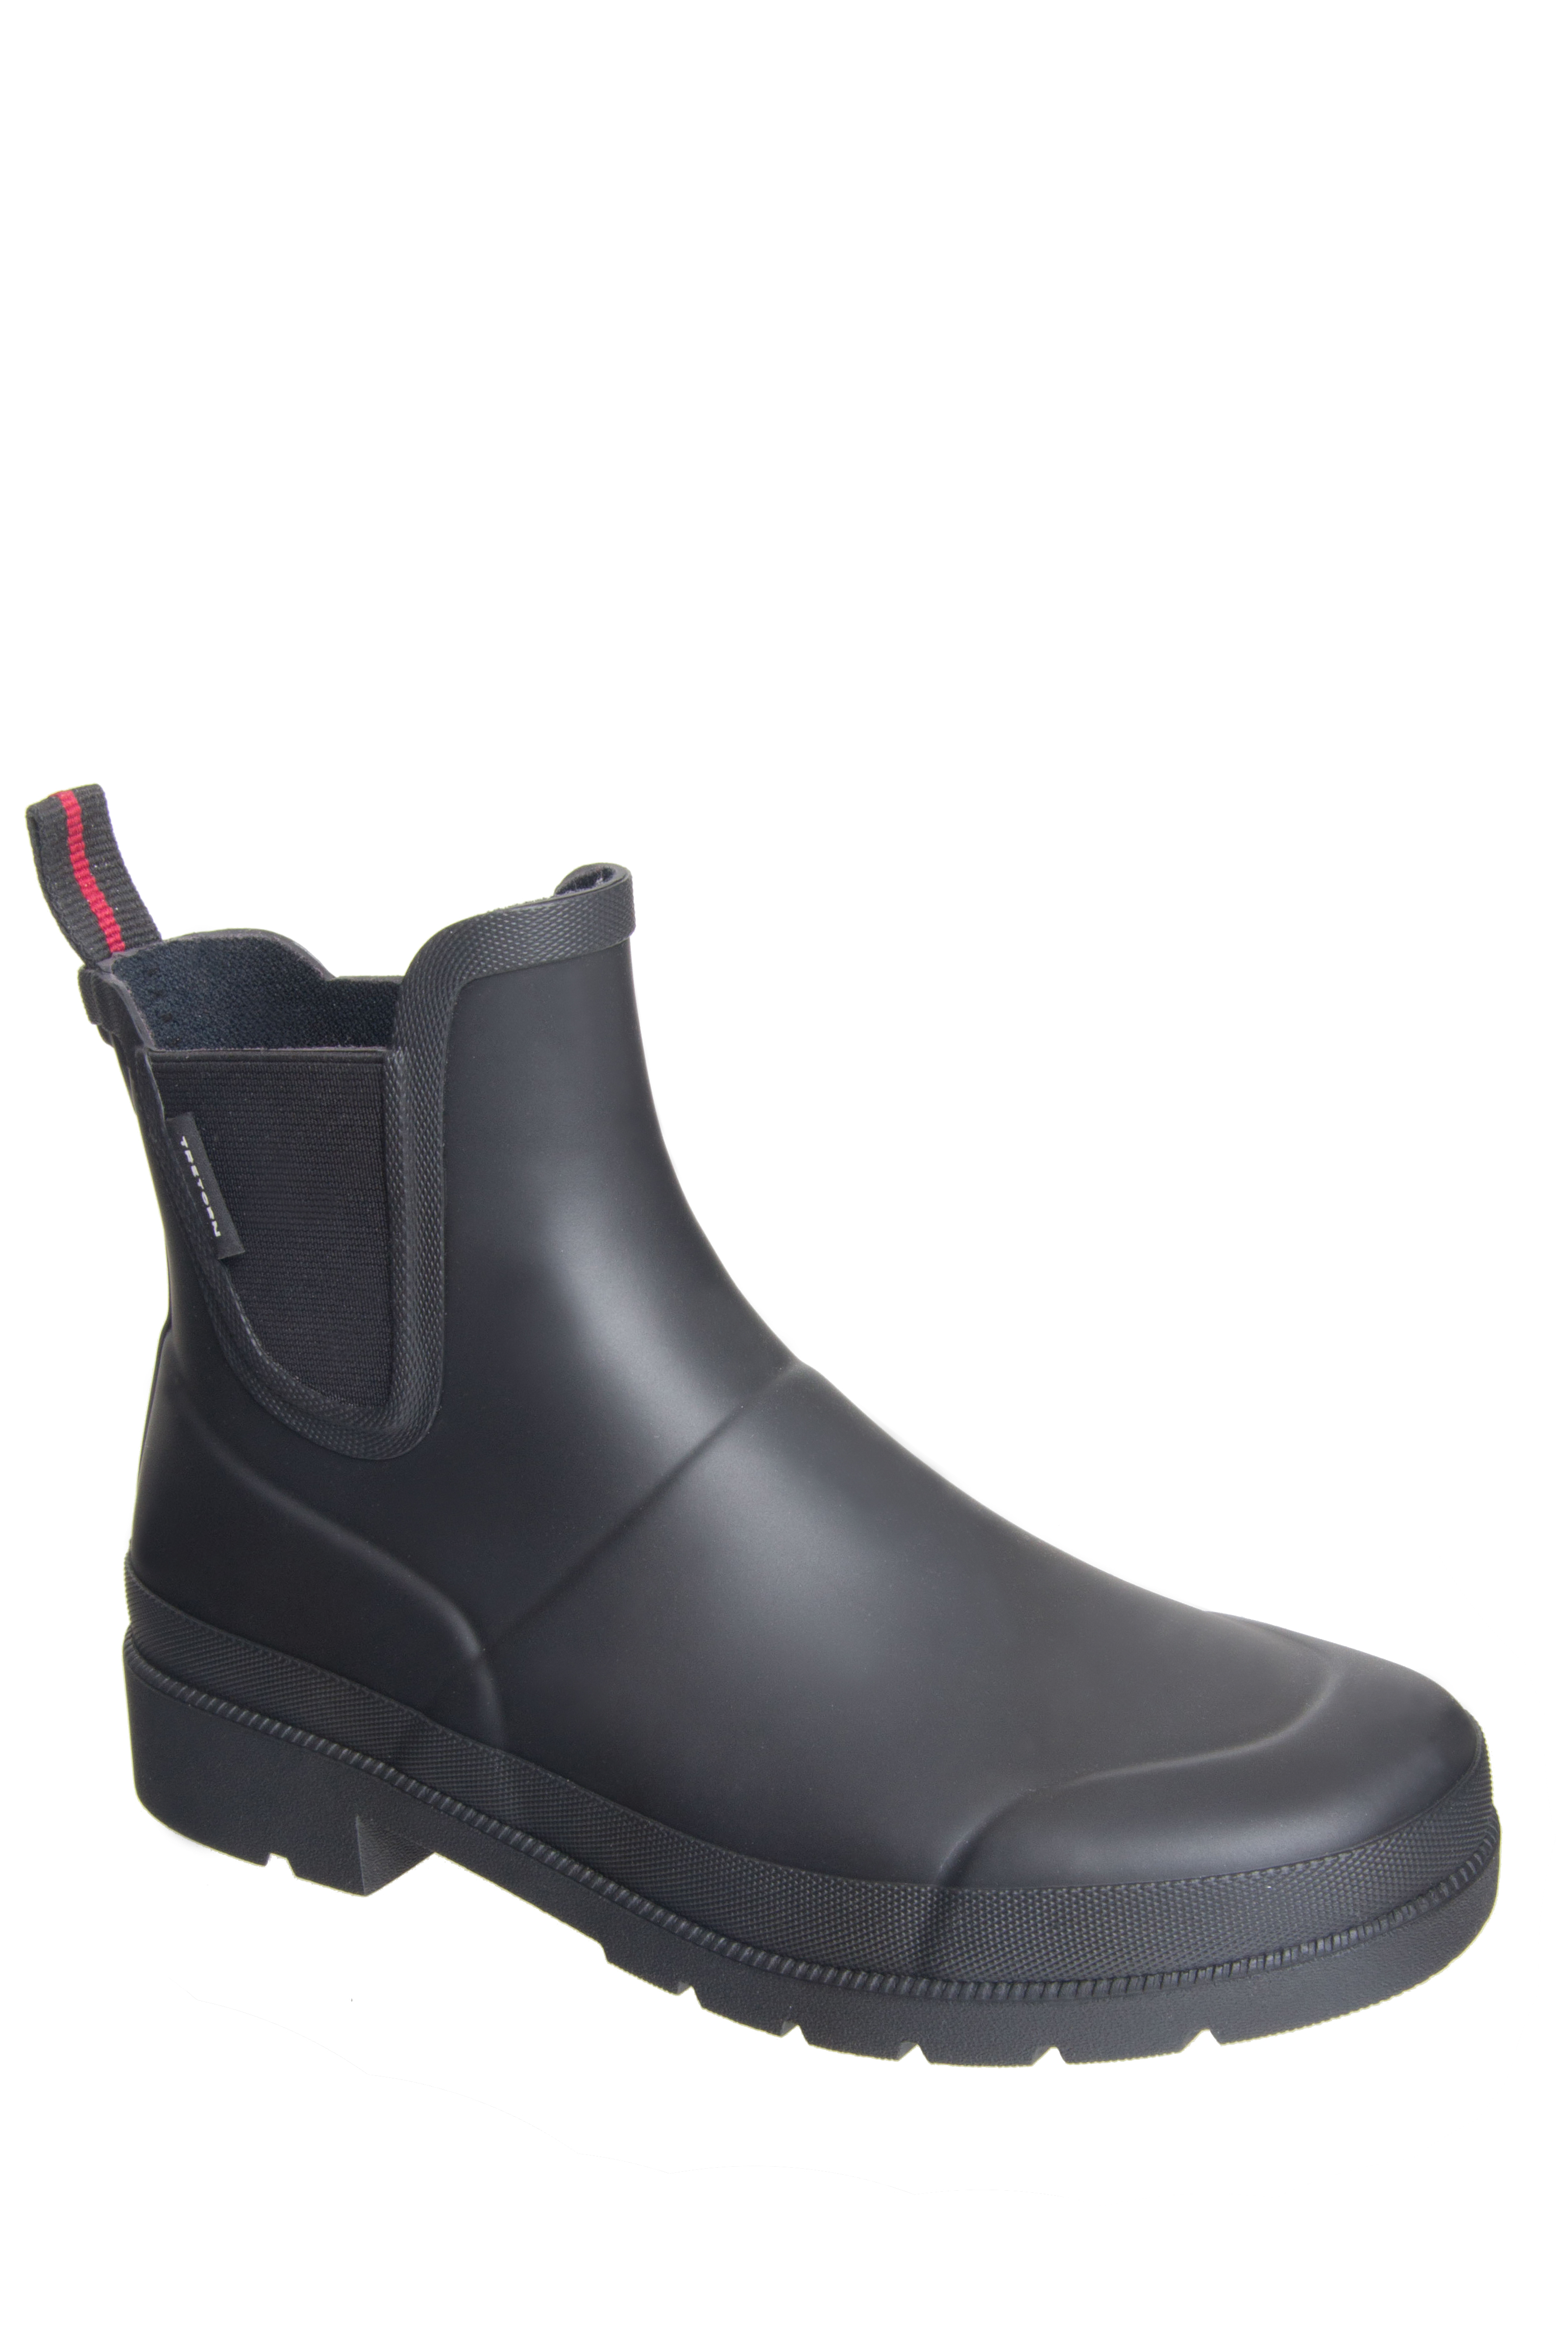 Click here to buy Tretorn Lina Low Heel Rain Boot Black.